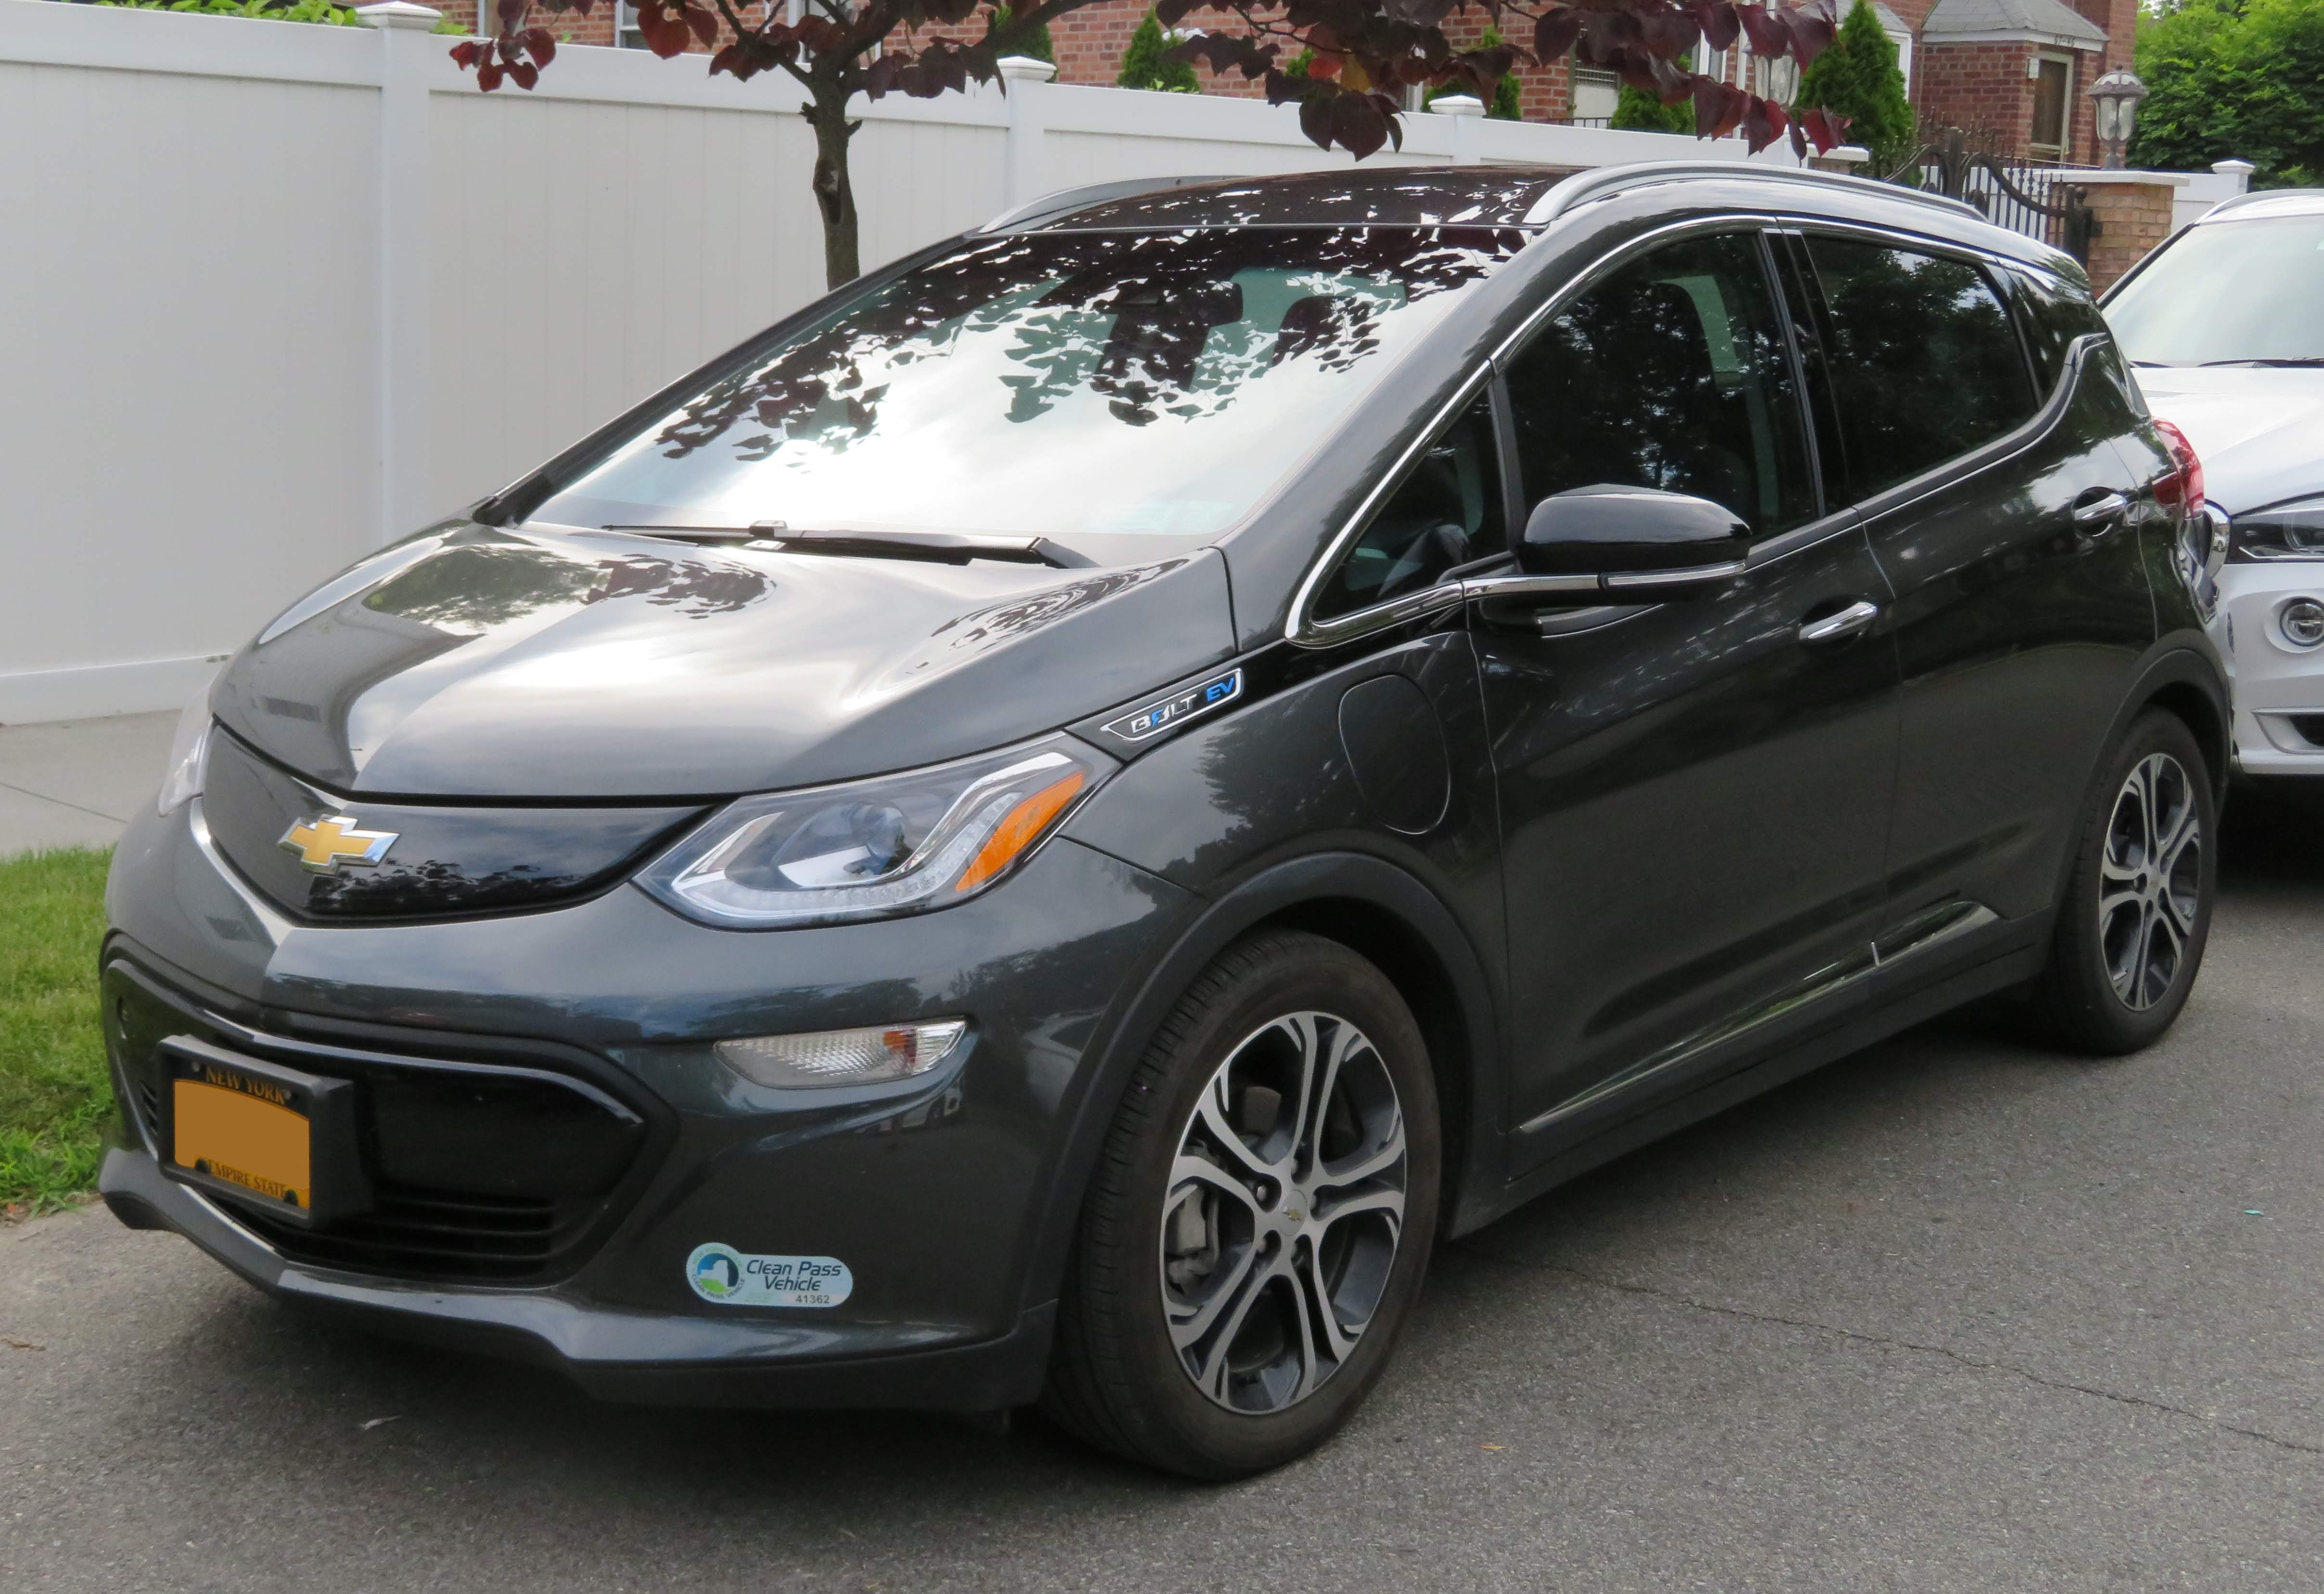 47 Great 2020 Chevrolet Bolt Ev Overview with 2020 Chevrolet Bolt Ev